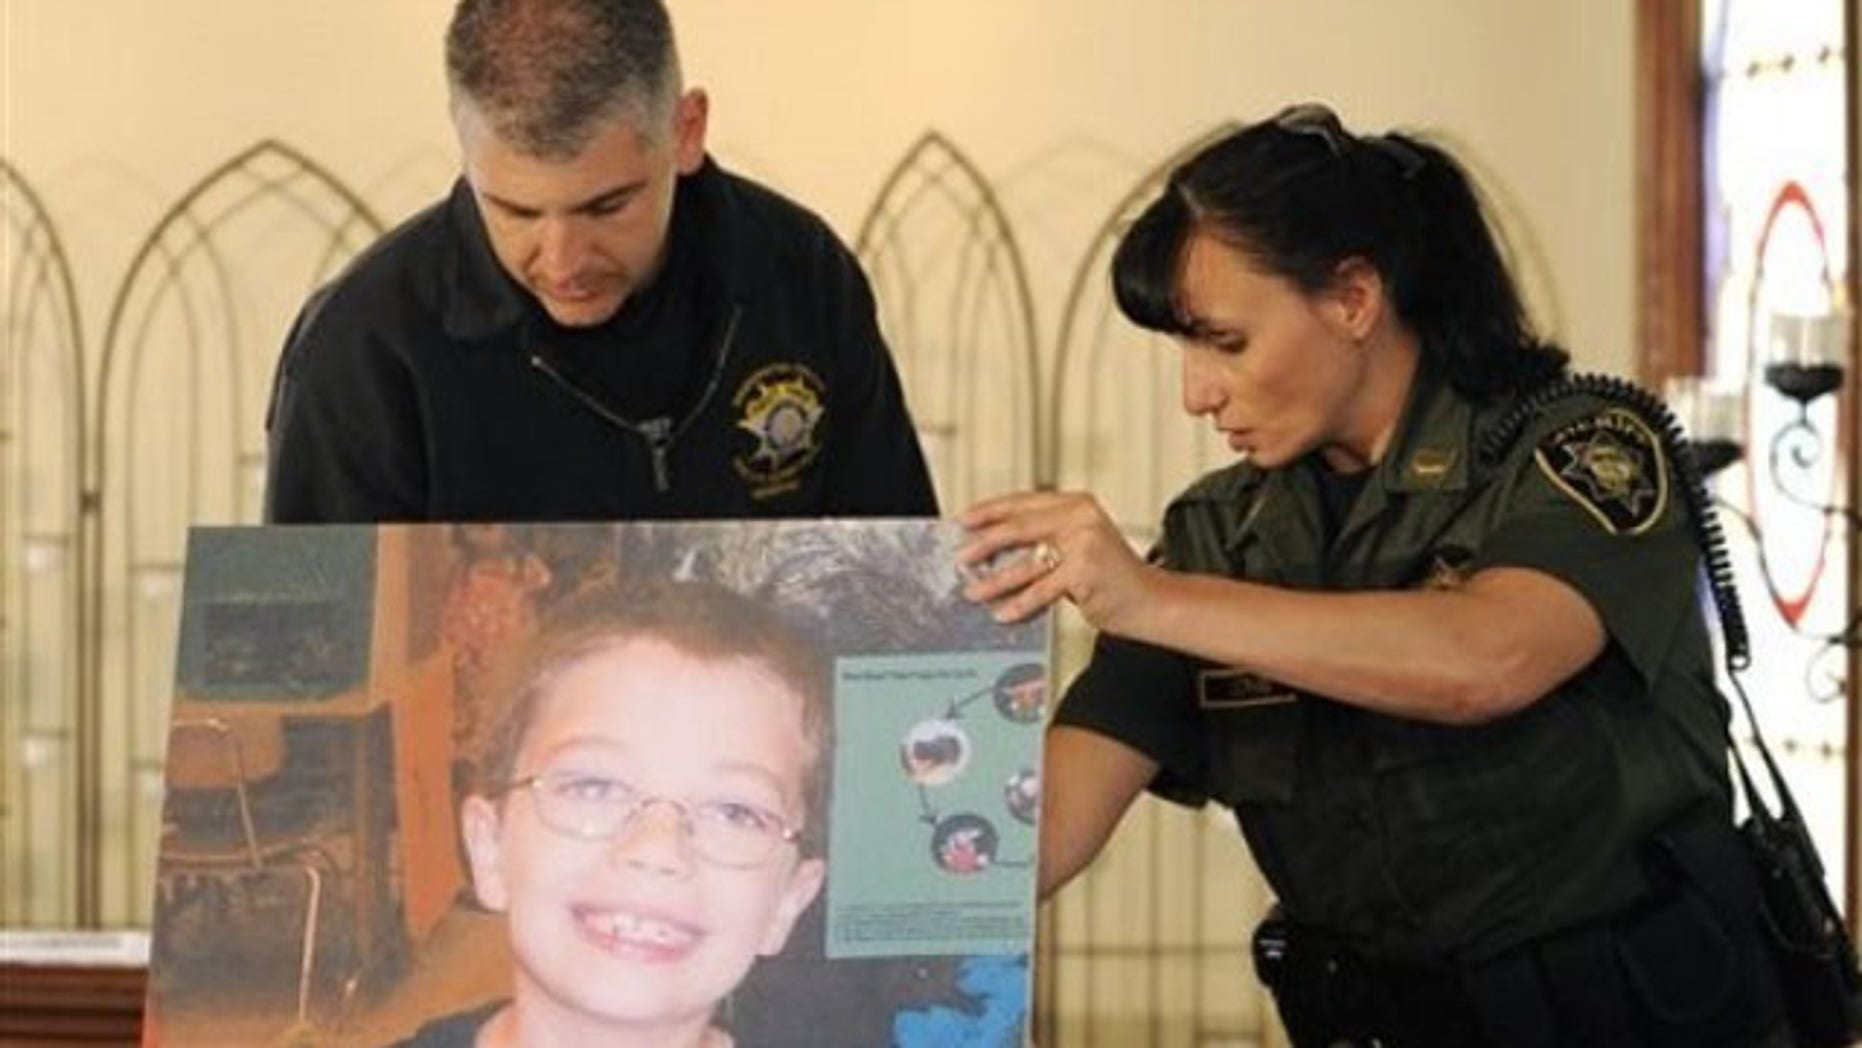 June 7: Officers Mary Lindstrand, right, of Multnomah County and Dave Thompson of Washington County set up a photo of missing 7-year-old Kyron Horman, prior to a news conference at Brooks Hill Historic church across from Skyline Elementary School in Portland, Ore.